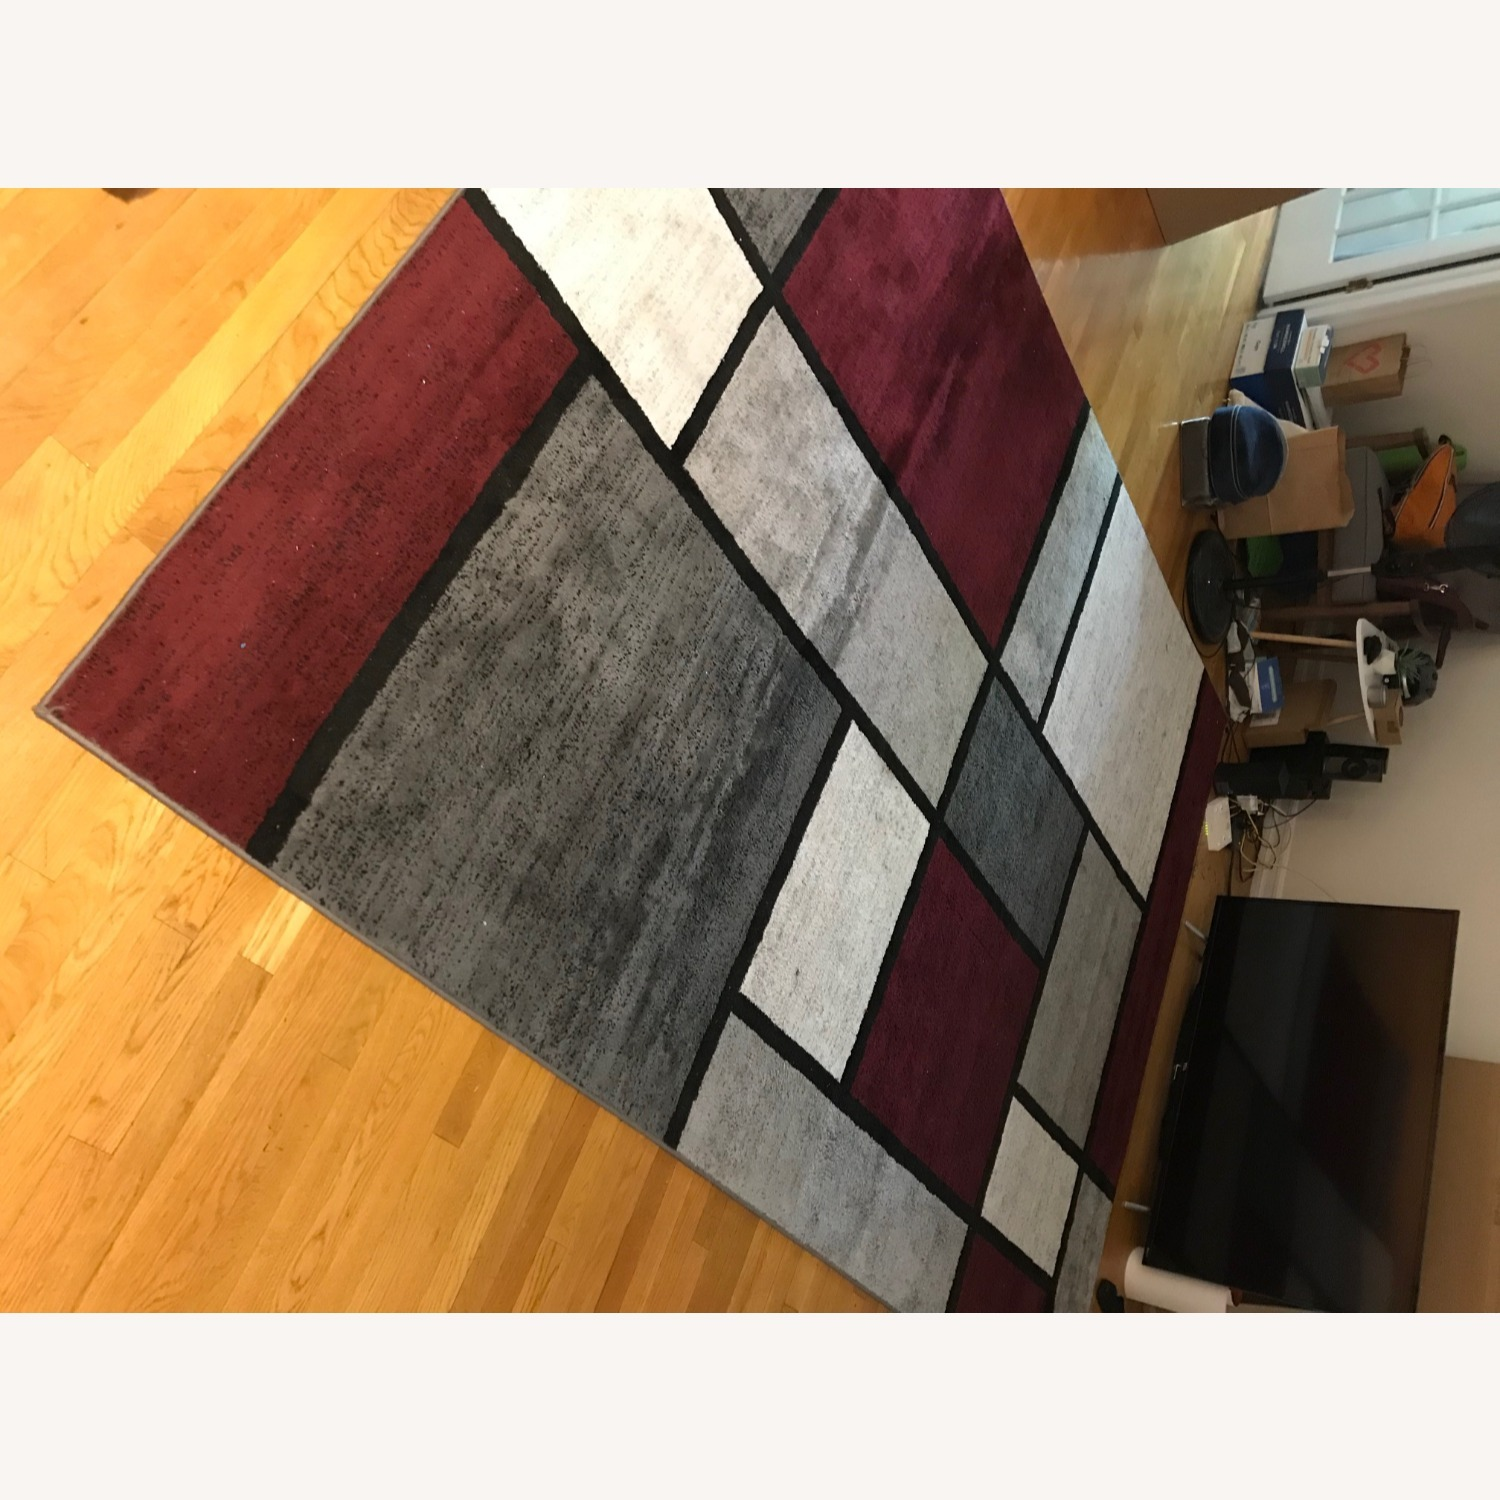 8' x 10' Red White and Grey Area Rug w Rug Pad - image-12